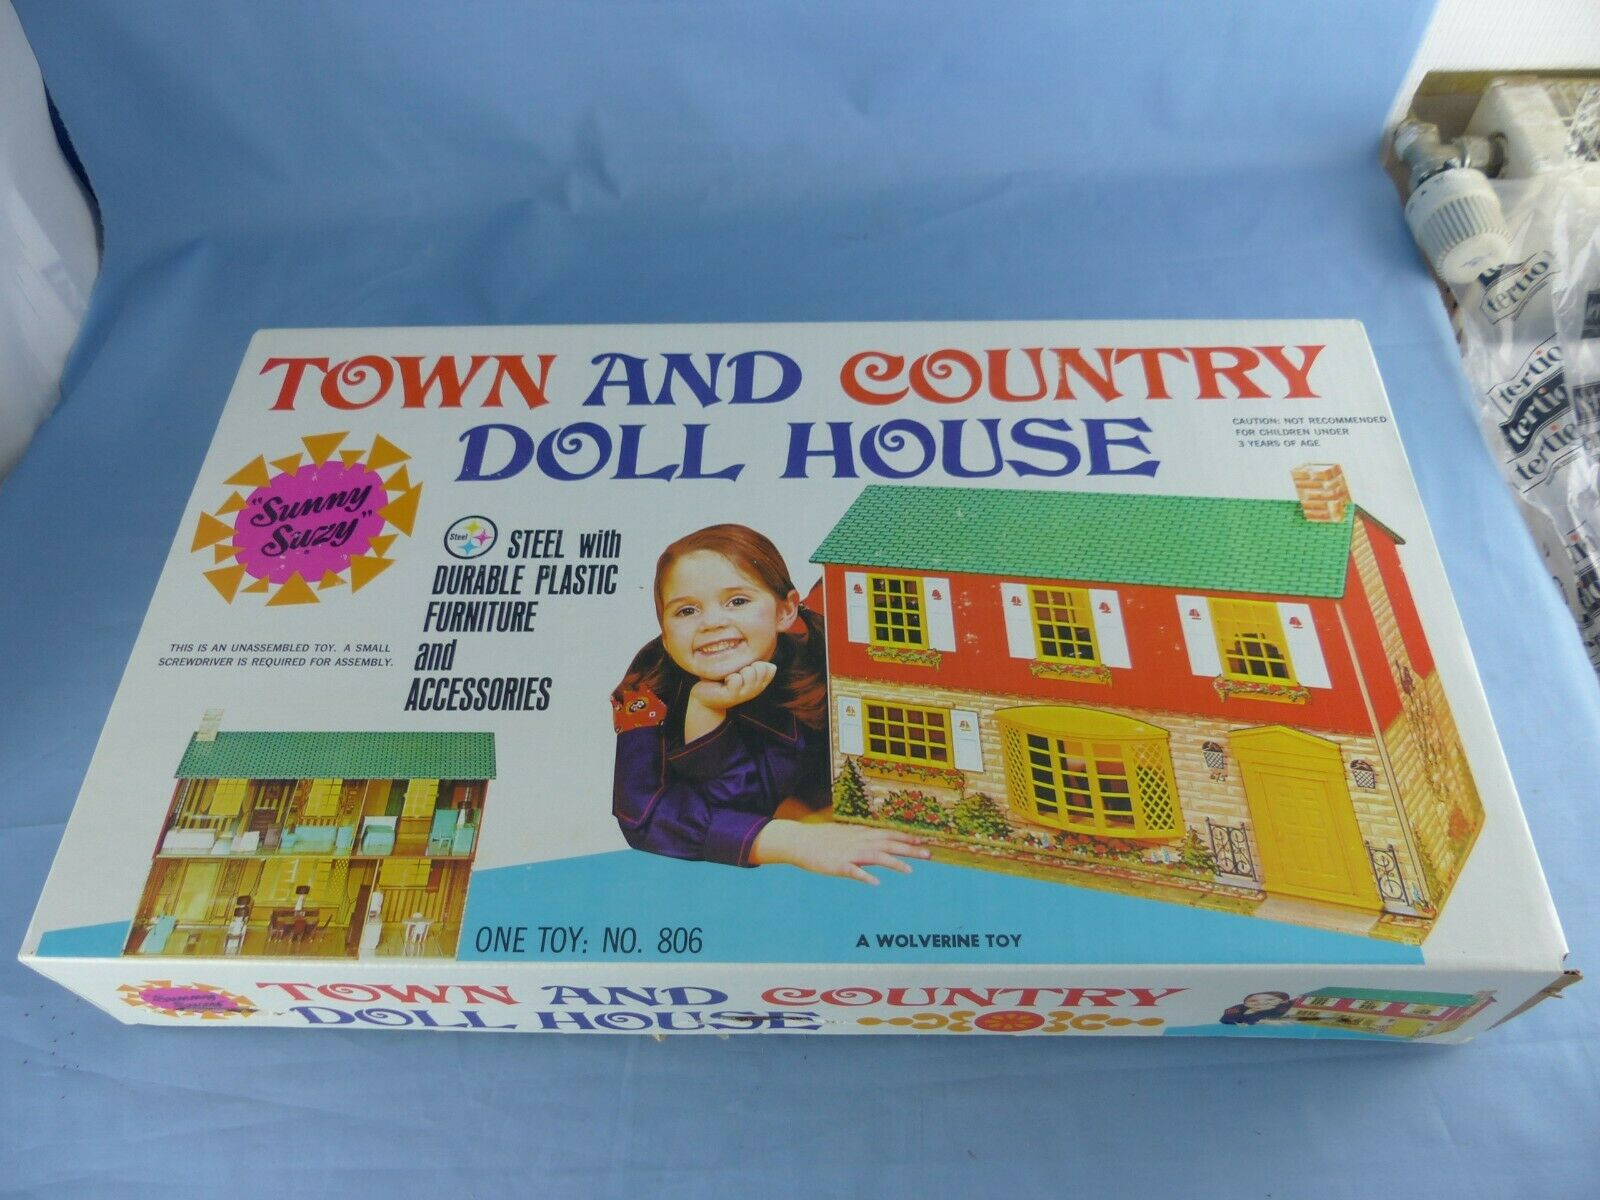 WOLVERINE TOY TOWN AND COUNTRY DOLL HOUSE TIN maison de poupée tôle litho N° 806